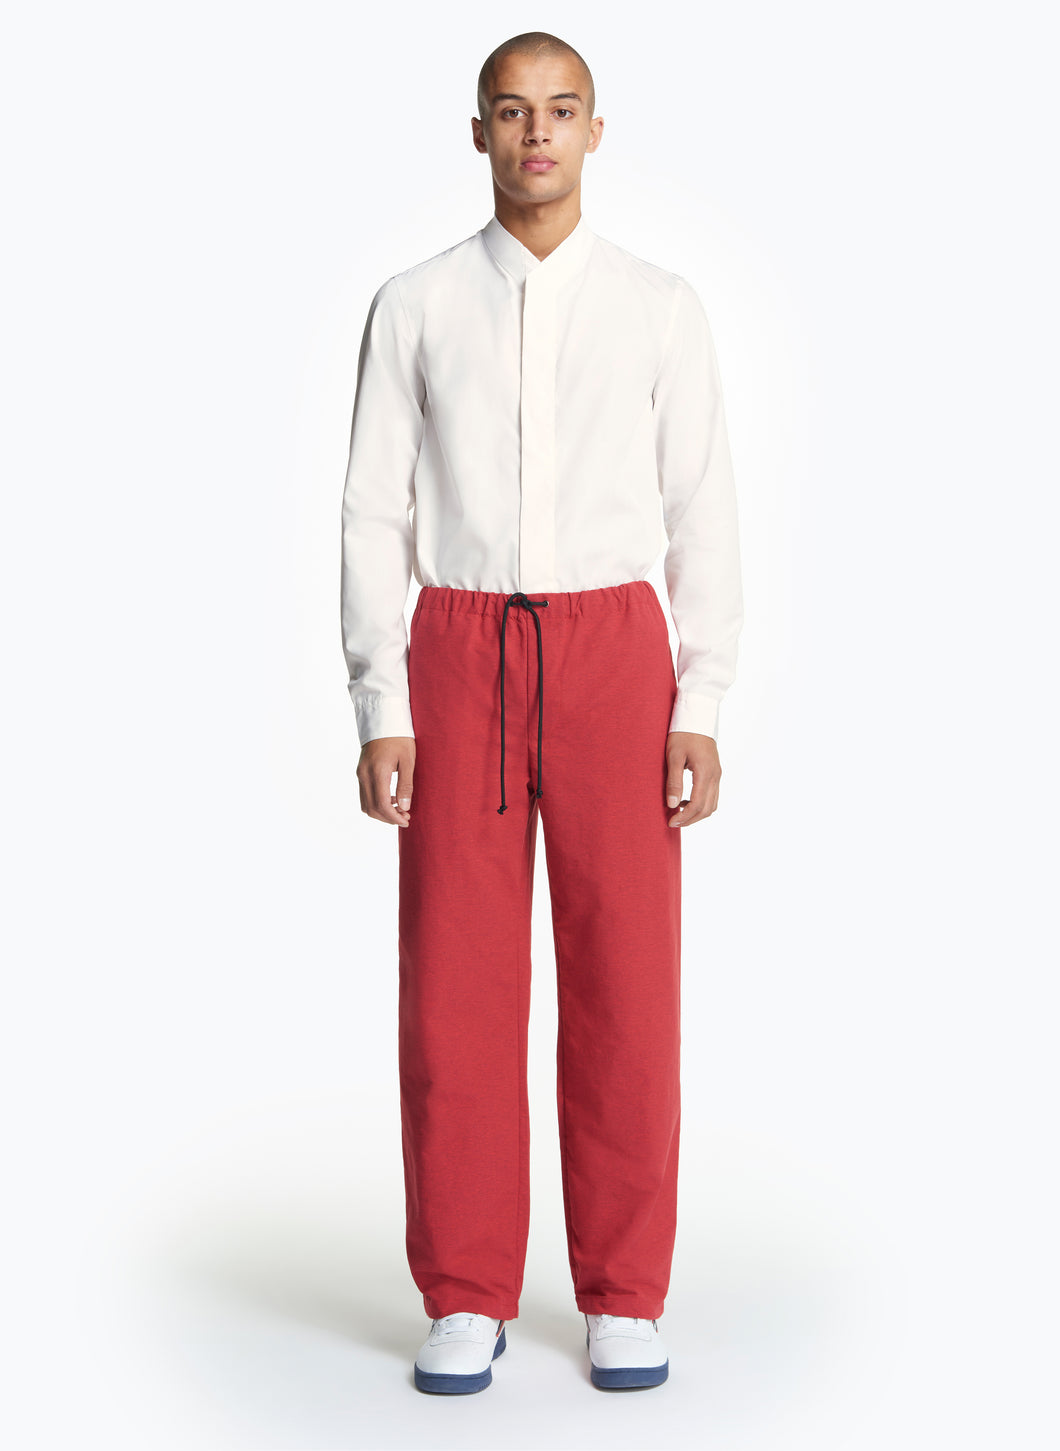 Elastic Waist Pants with Tie in Red Tactel